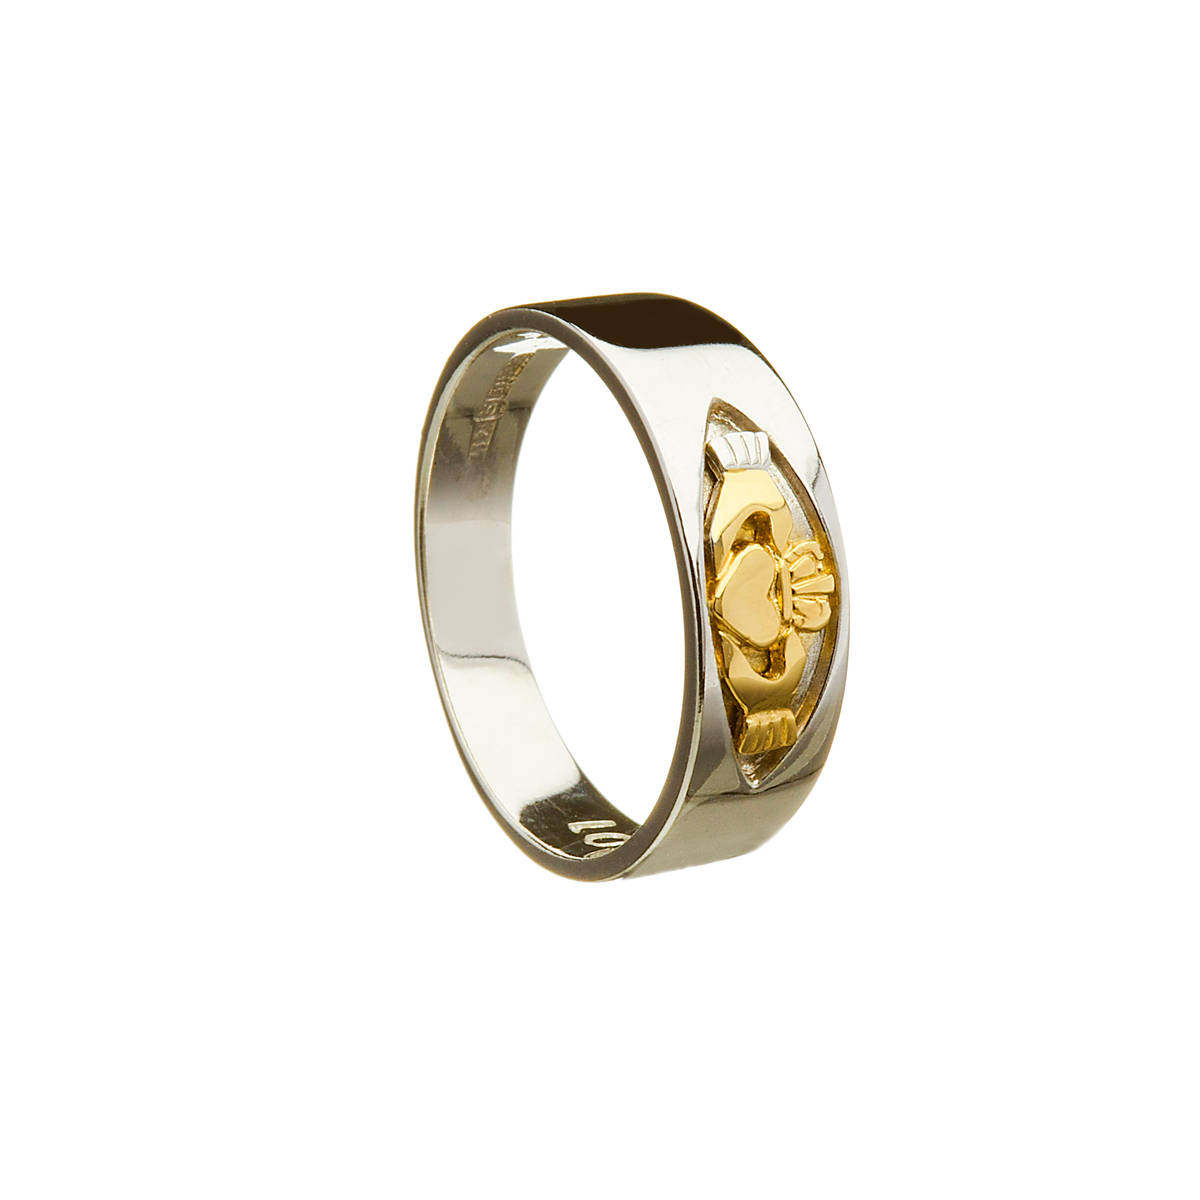 10ct W/gold Mans Band With Y/gold Claddagh Insert Claddagh Motto Engraved Inside   10 carat white and yellow gold band with claddagh design in window in a very unique design.Very stylish and different and sure to be treasured.